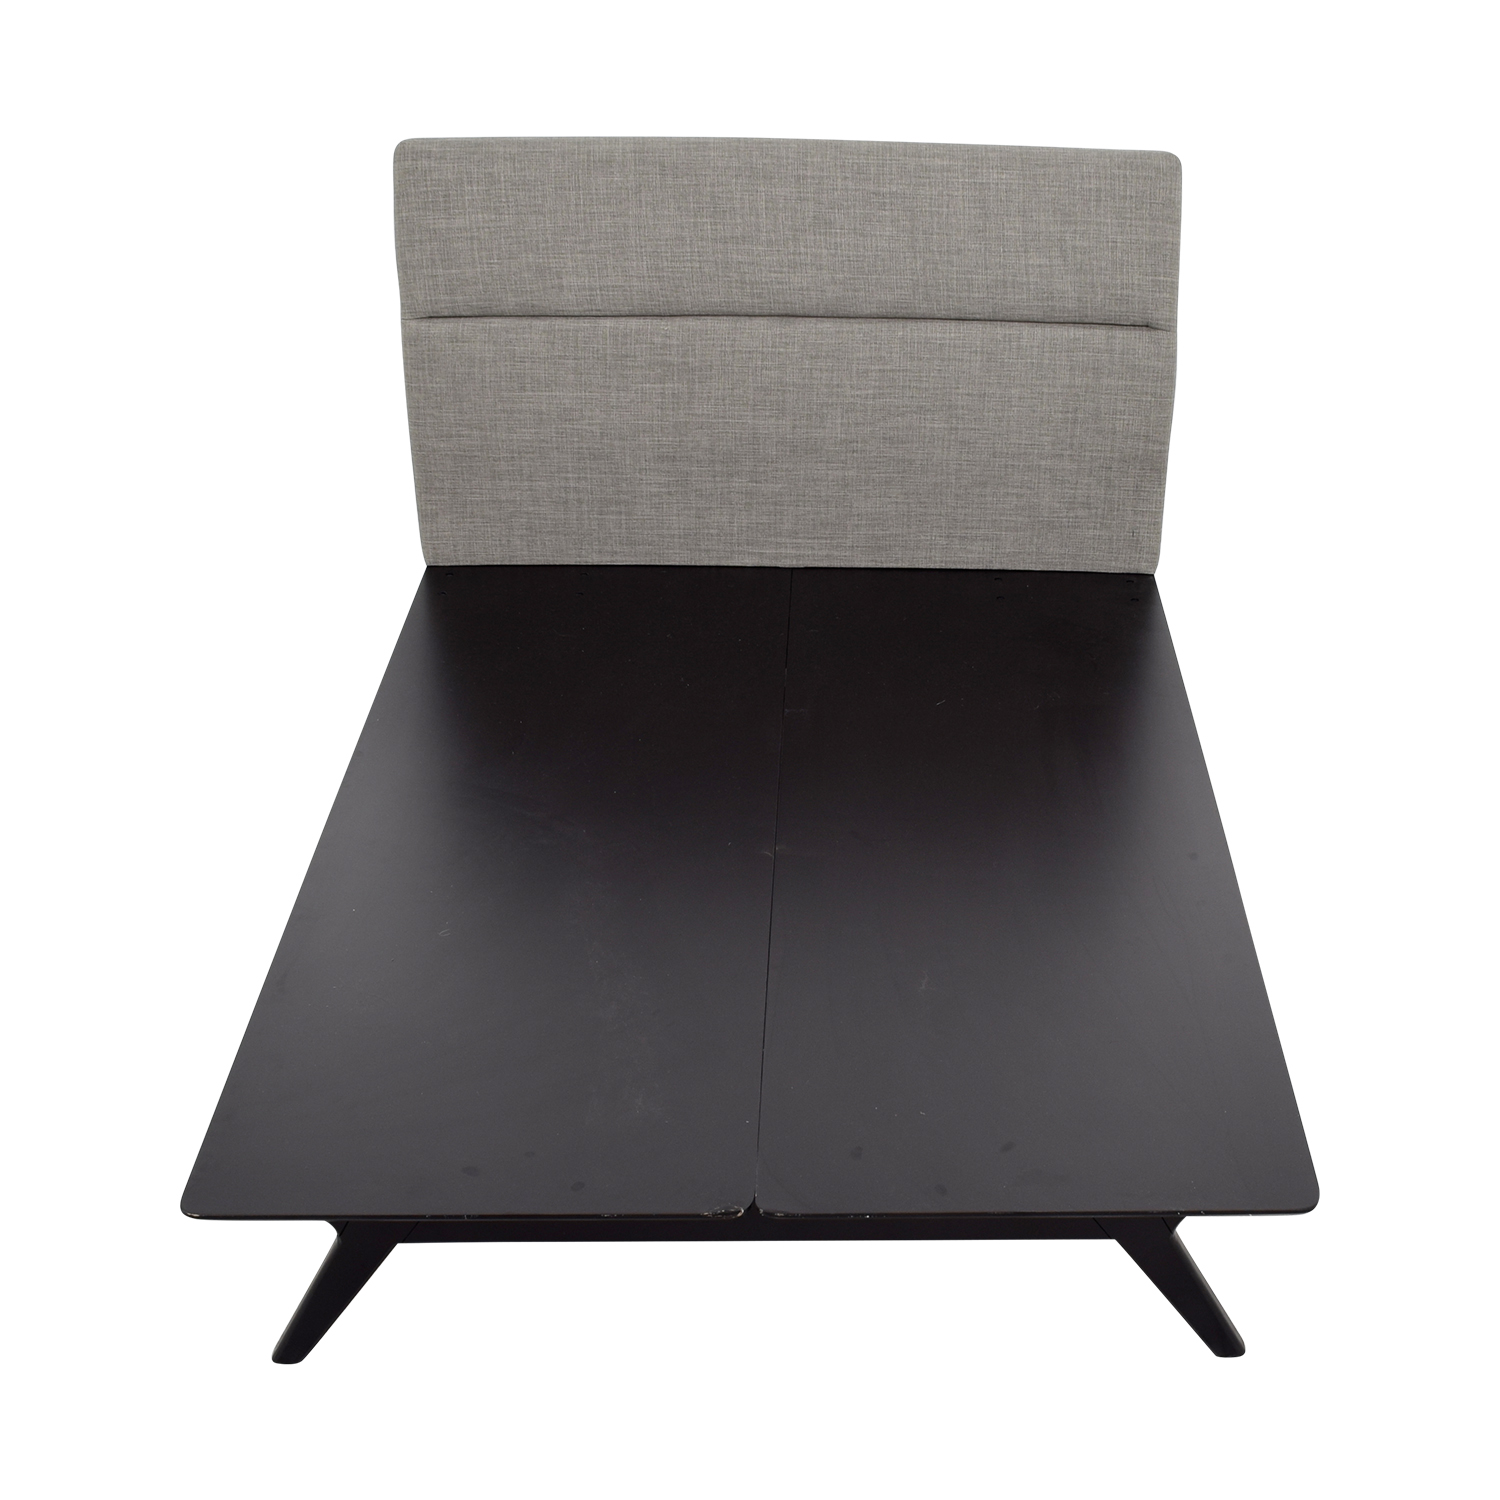 Modway Modway Upholstered Full Bed Frame price